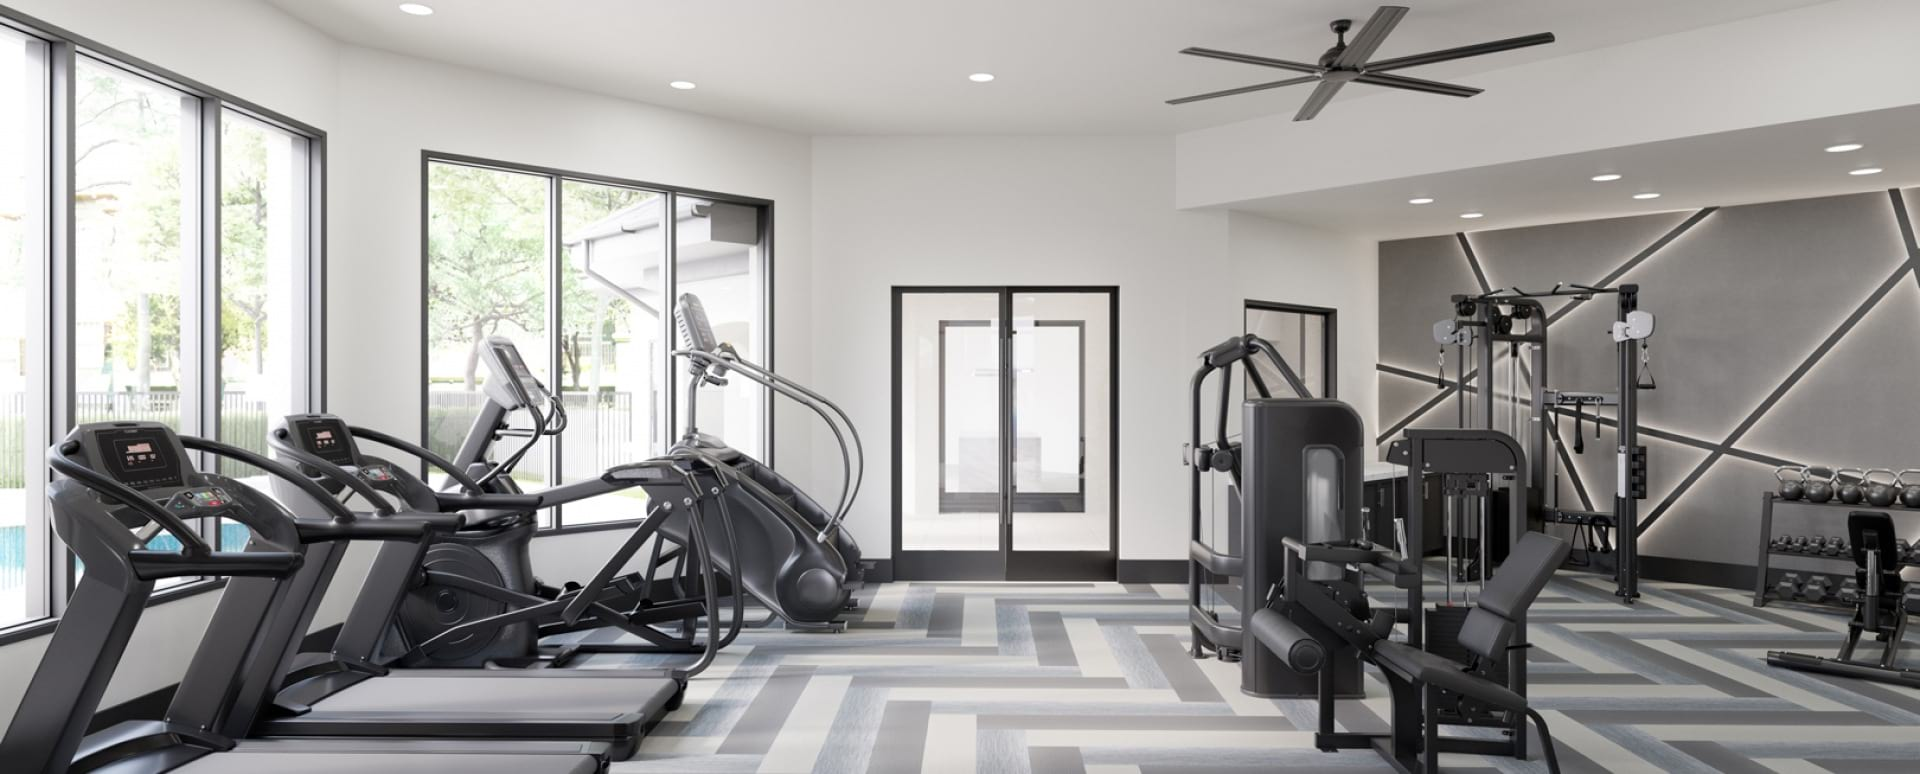 Allen apartment gym with updated equipment